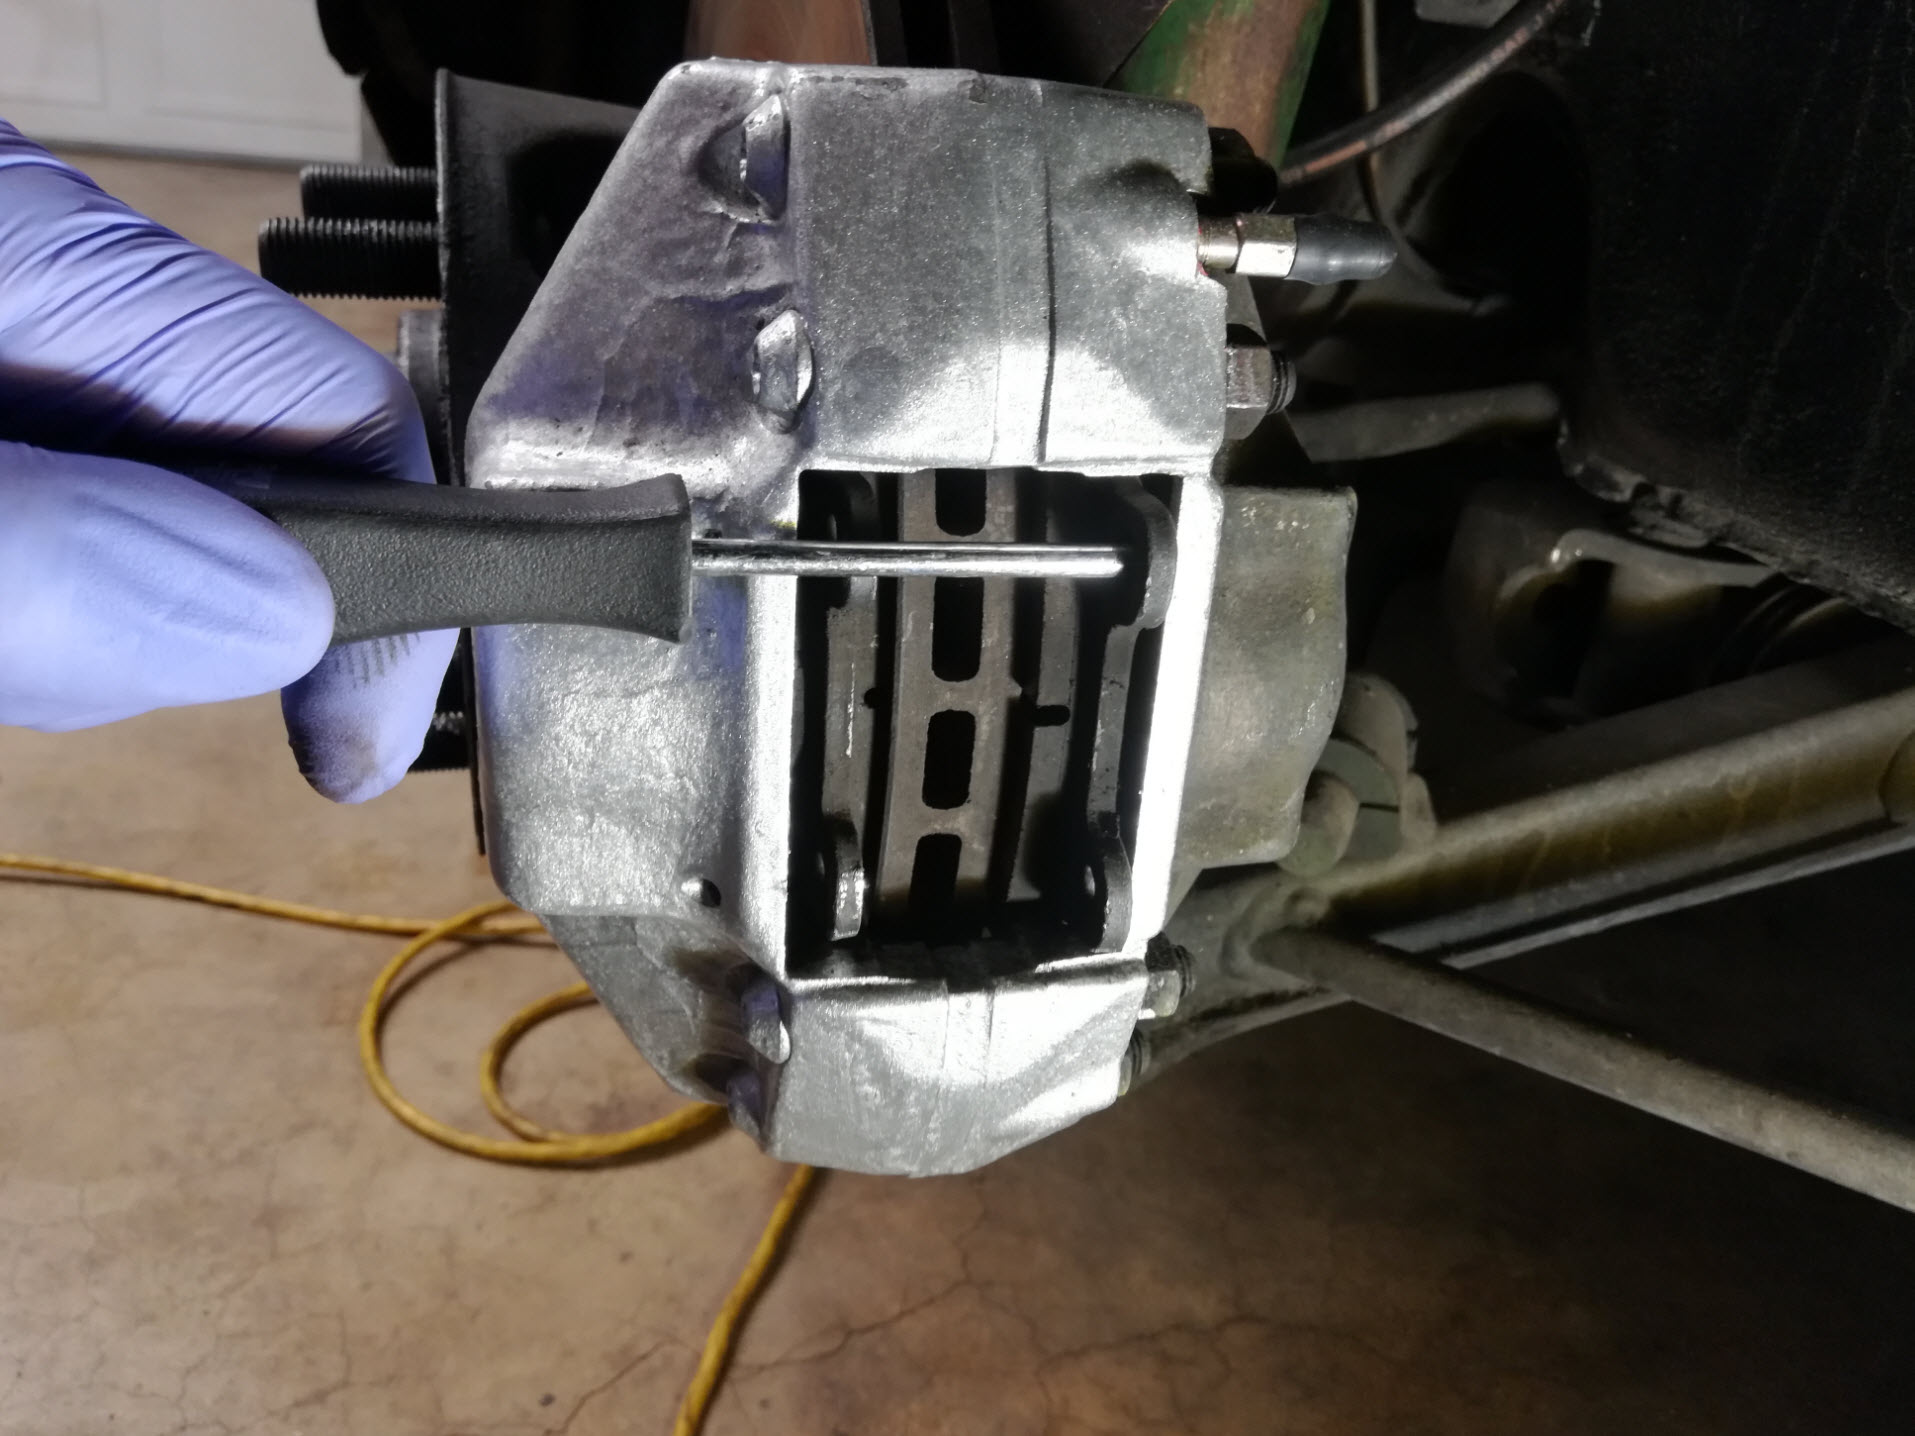 Air-cooled Porsche 911 brake pad removal tip.